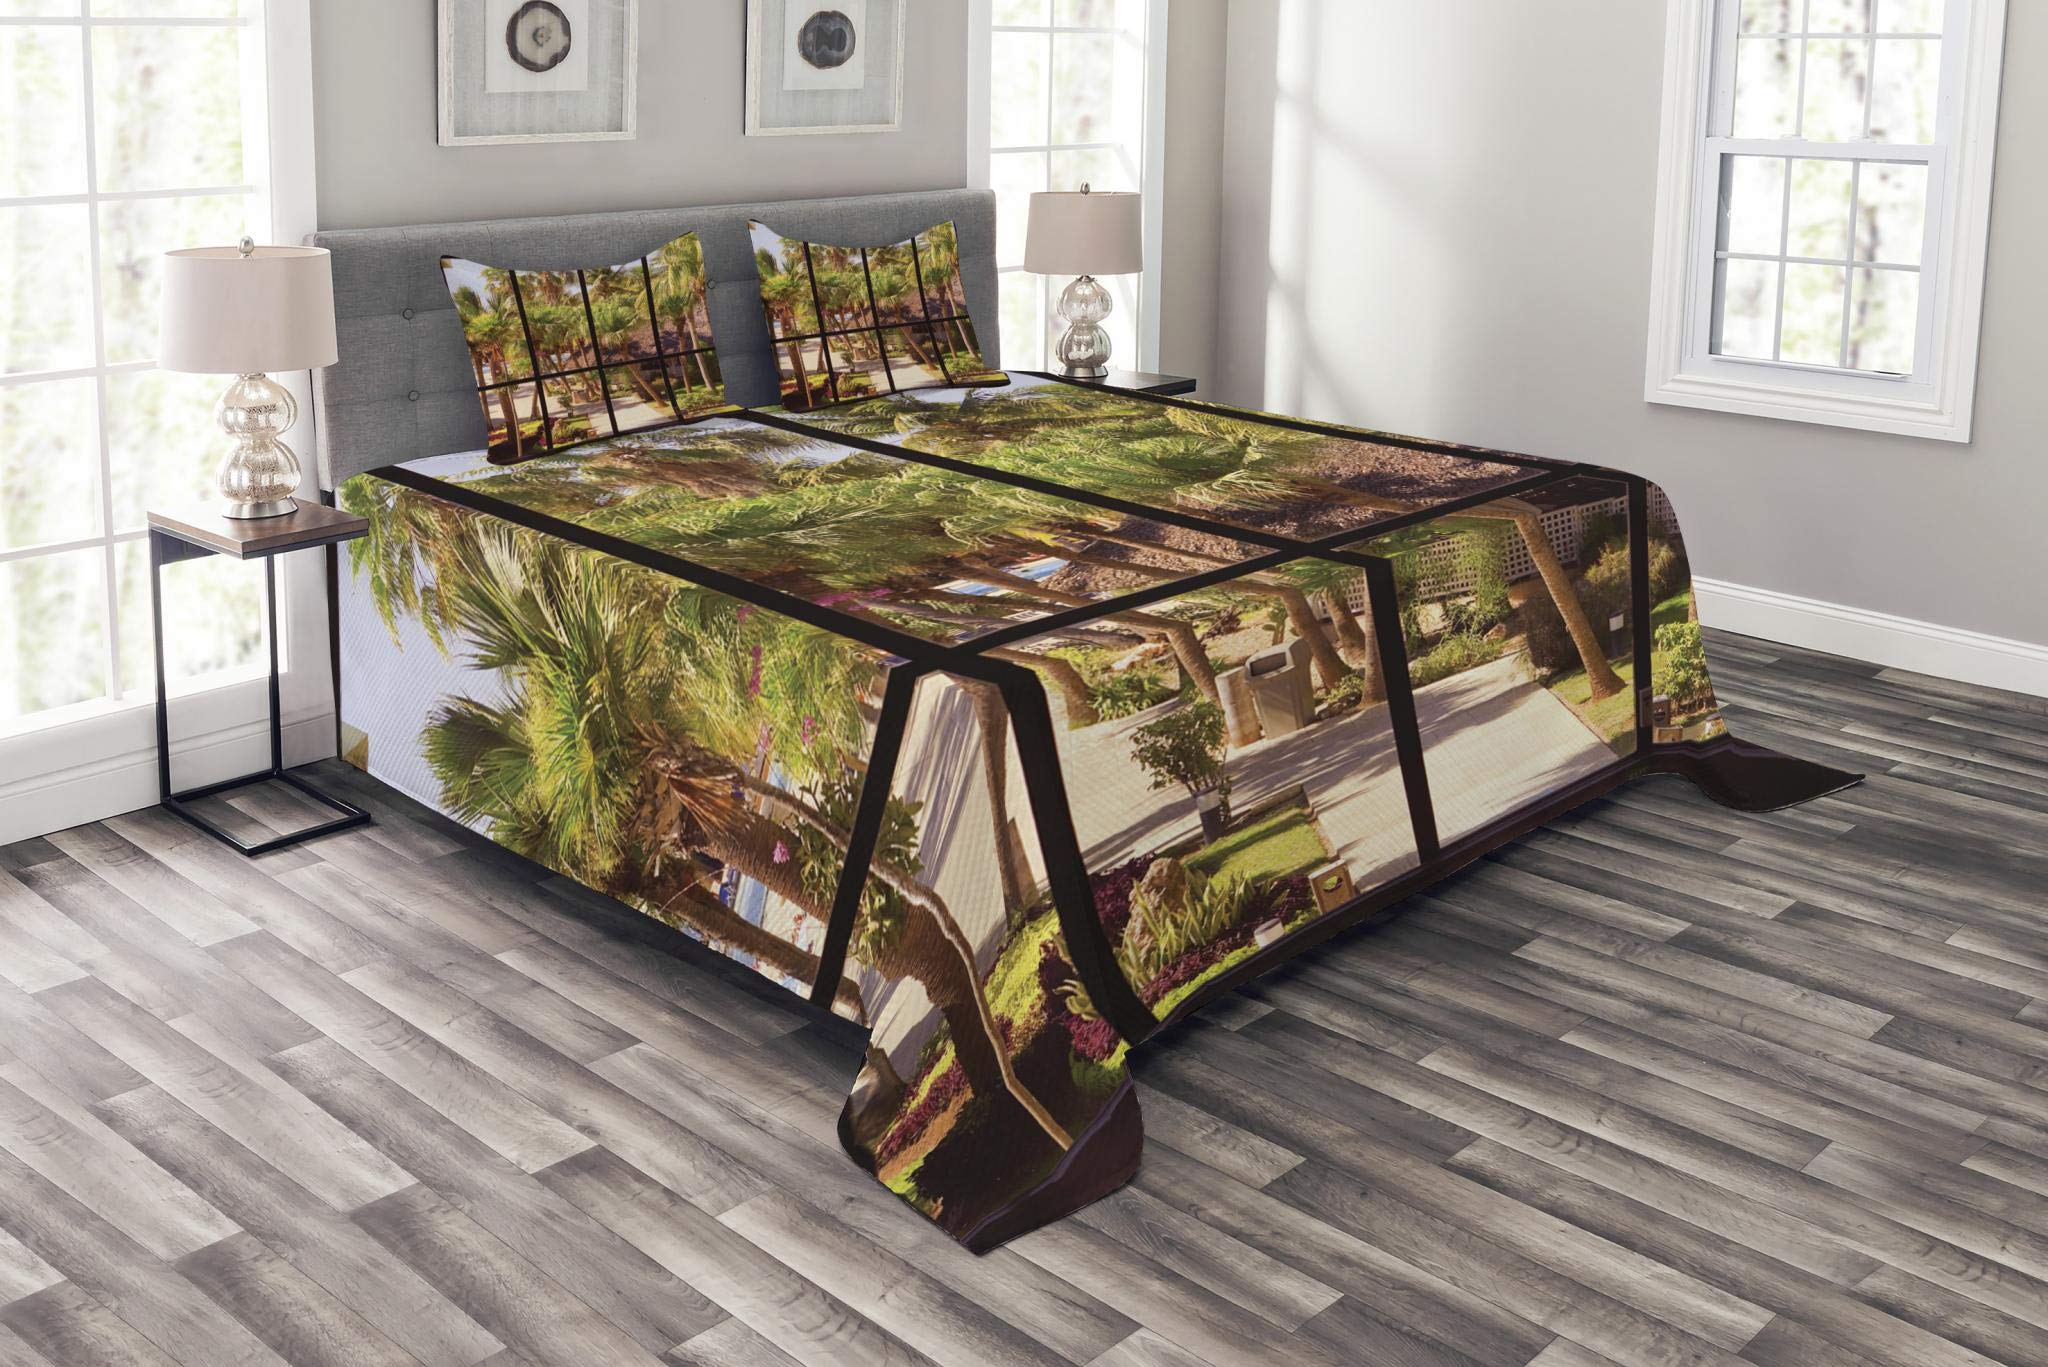 Lunarable Tropical Bedspread Set King Size, View of Tropical Garden Through a Panoramic Window Summertime Palm Tree, Decorative Quilted 3 Piece Coverlet Set with 2 Pillow Shams, Green Black Brown